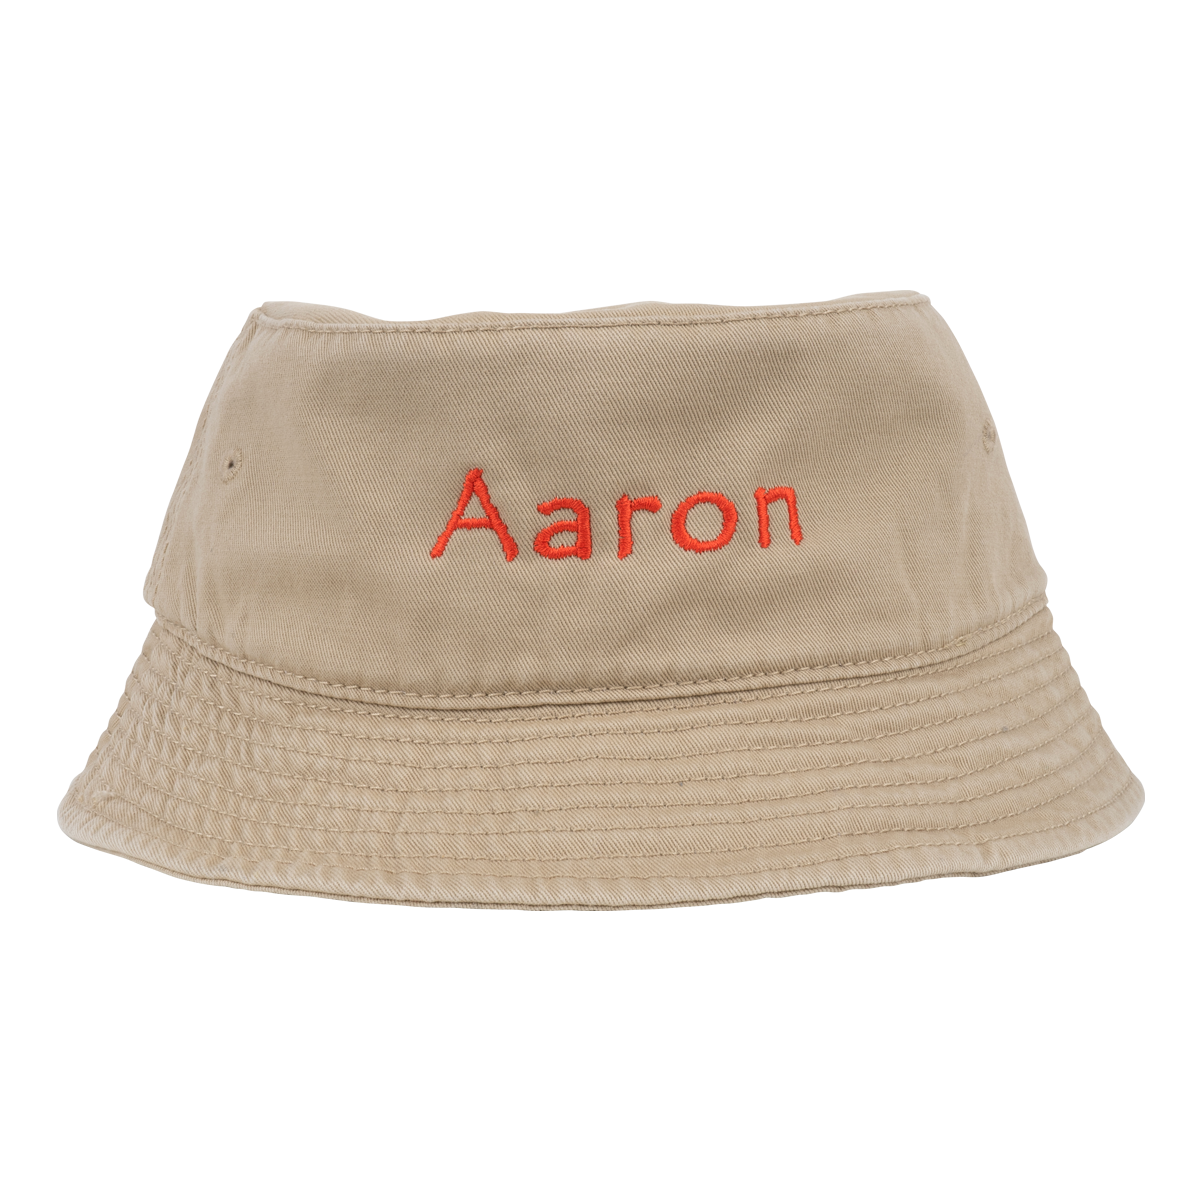 Aaron Bucket Hat